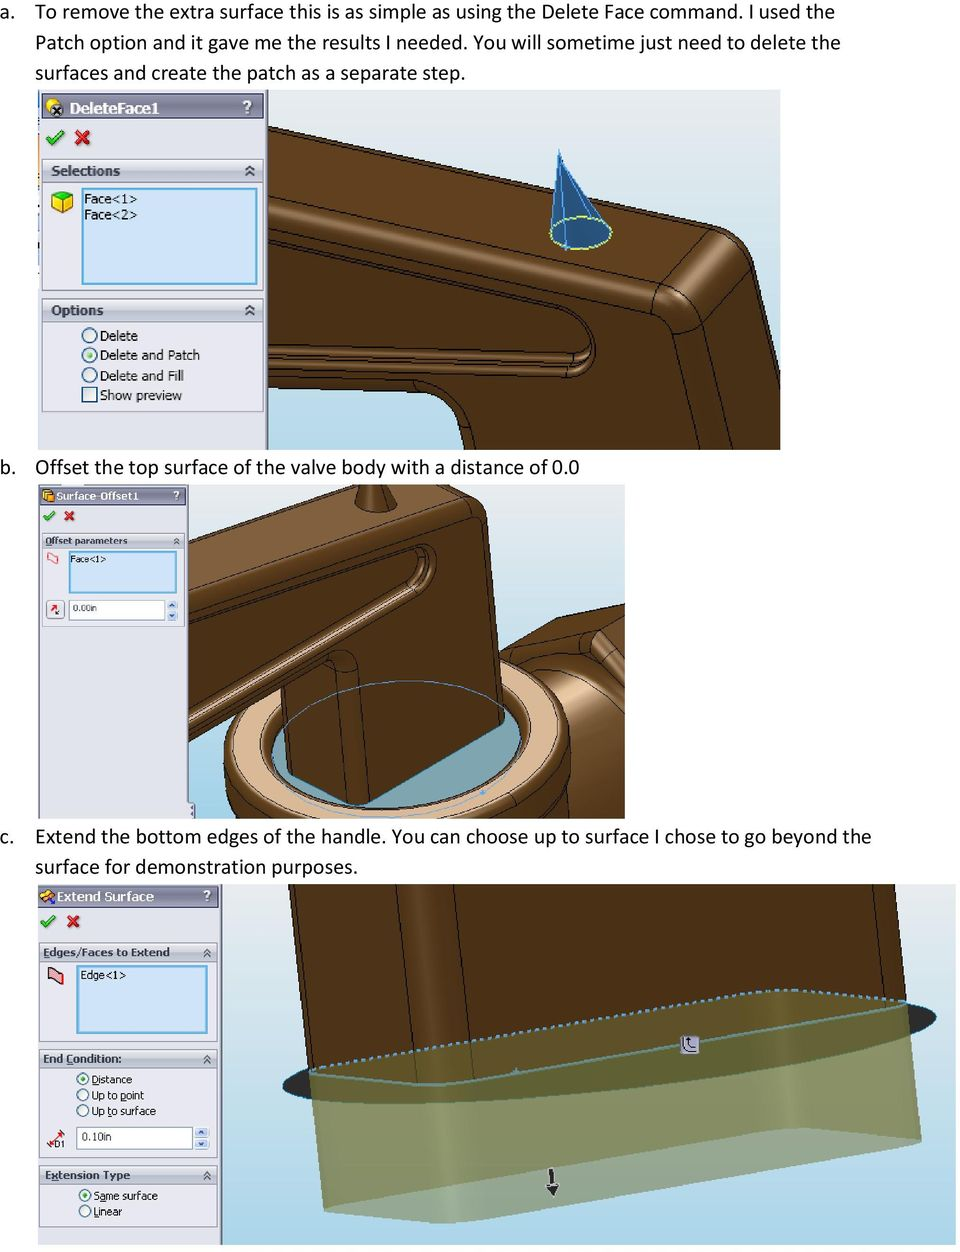 You will sometime just need to delete the surfaces and create the patch as a separate step. b.